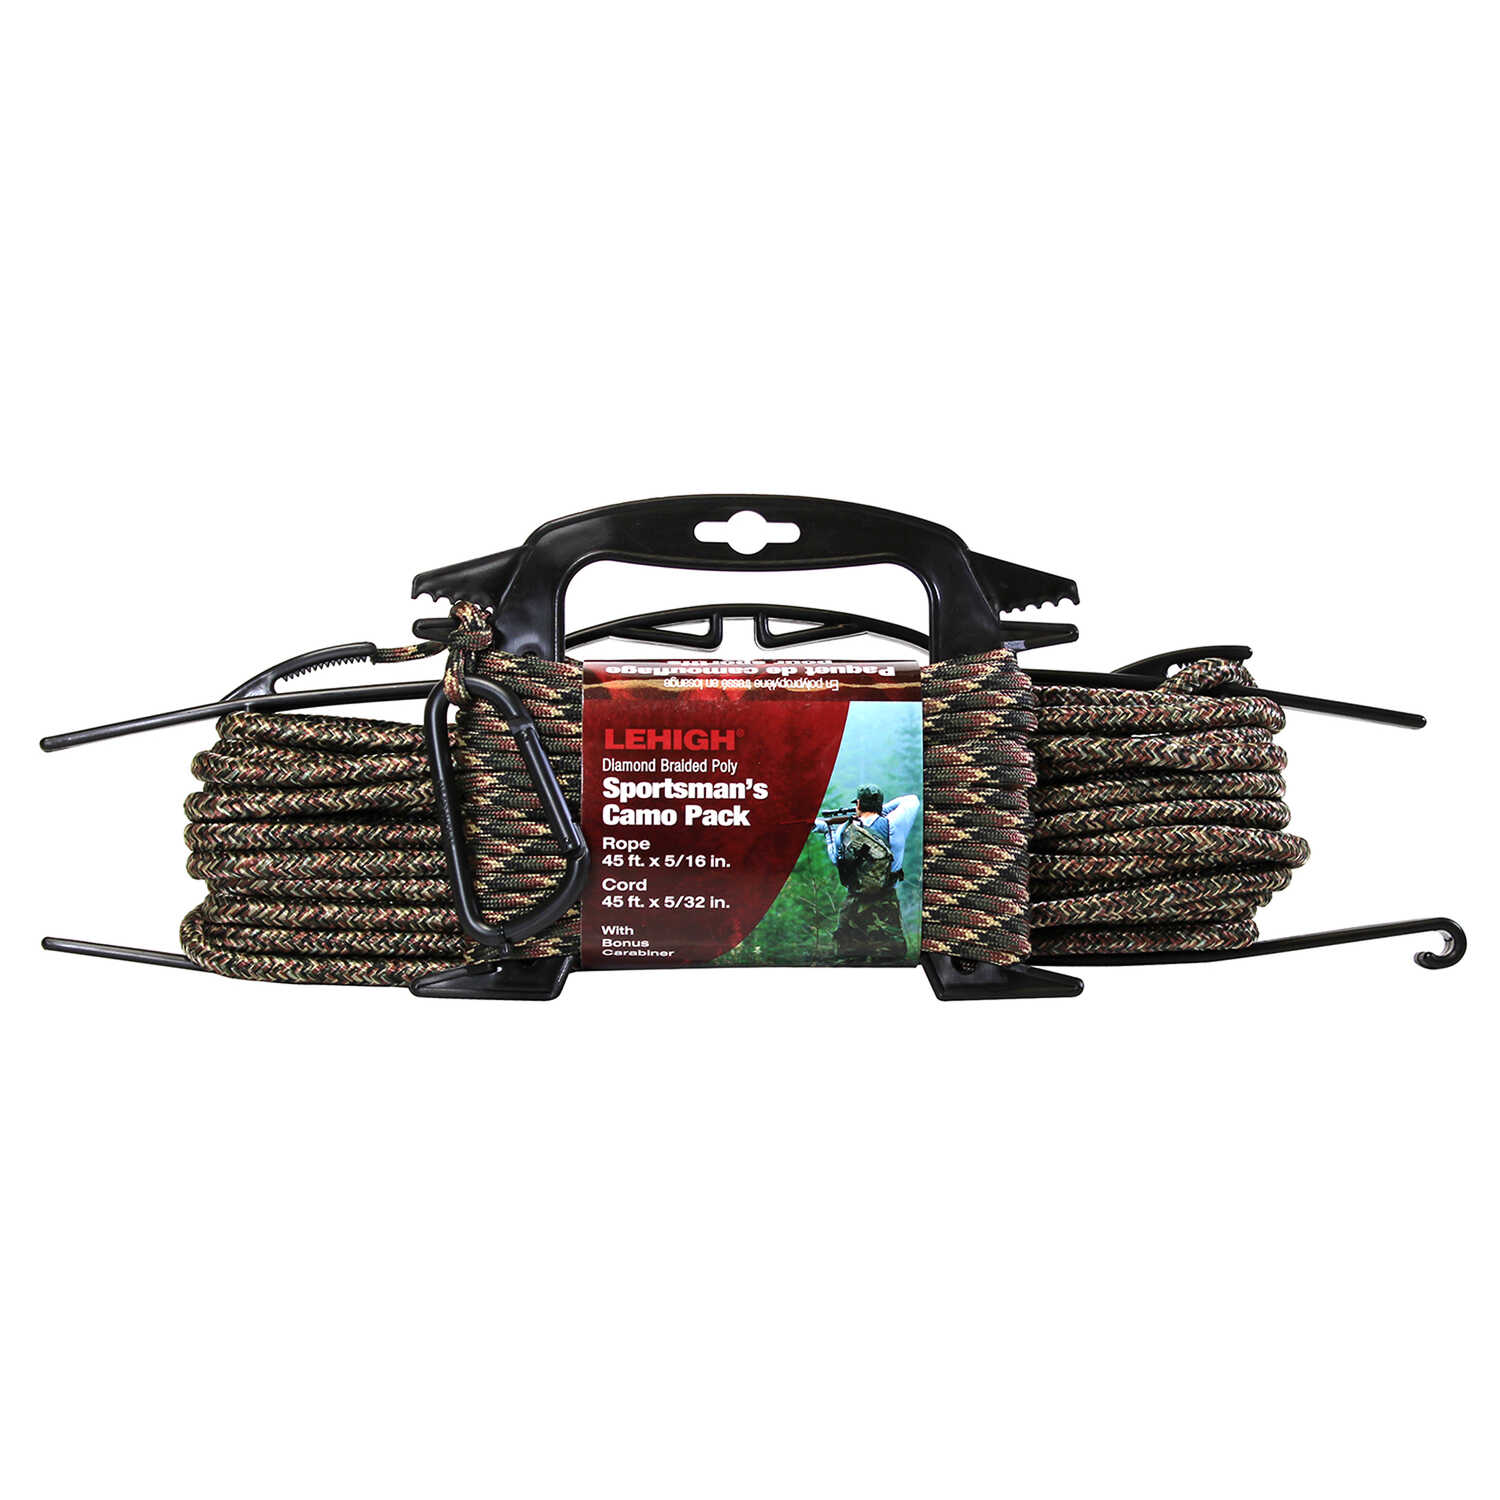 Wellington  45 ft. L x 5/16 in. Dia. Camouflage  Diamond Braided  Poly  Rope